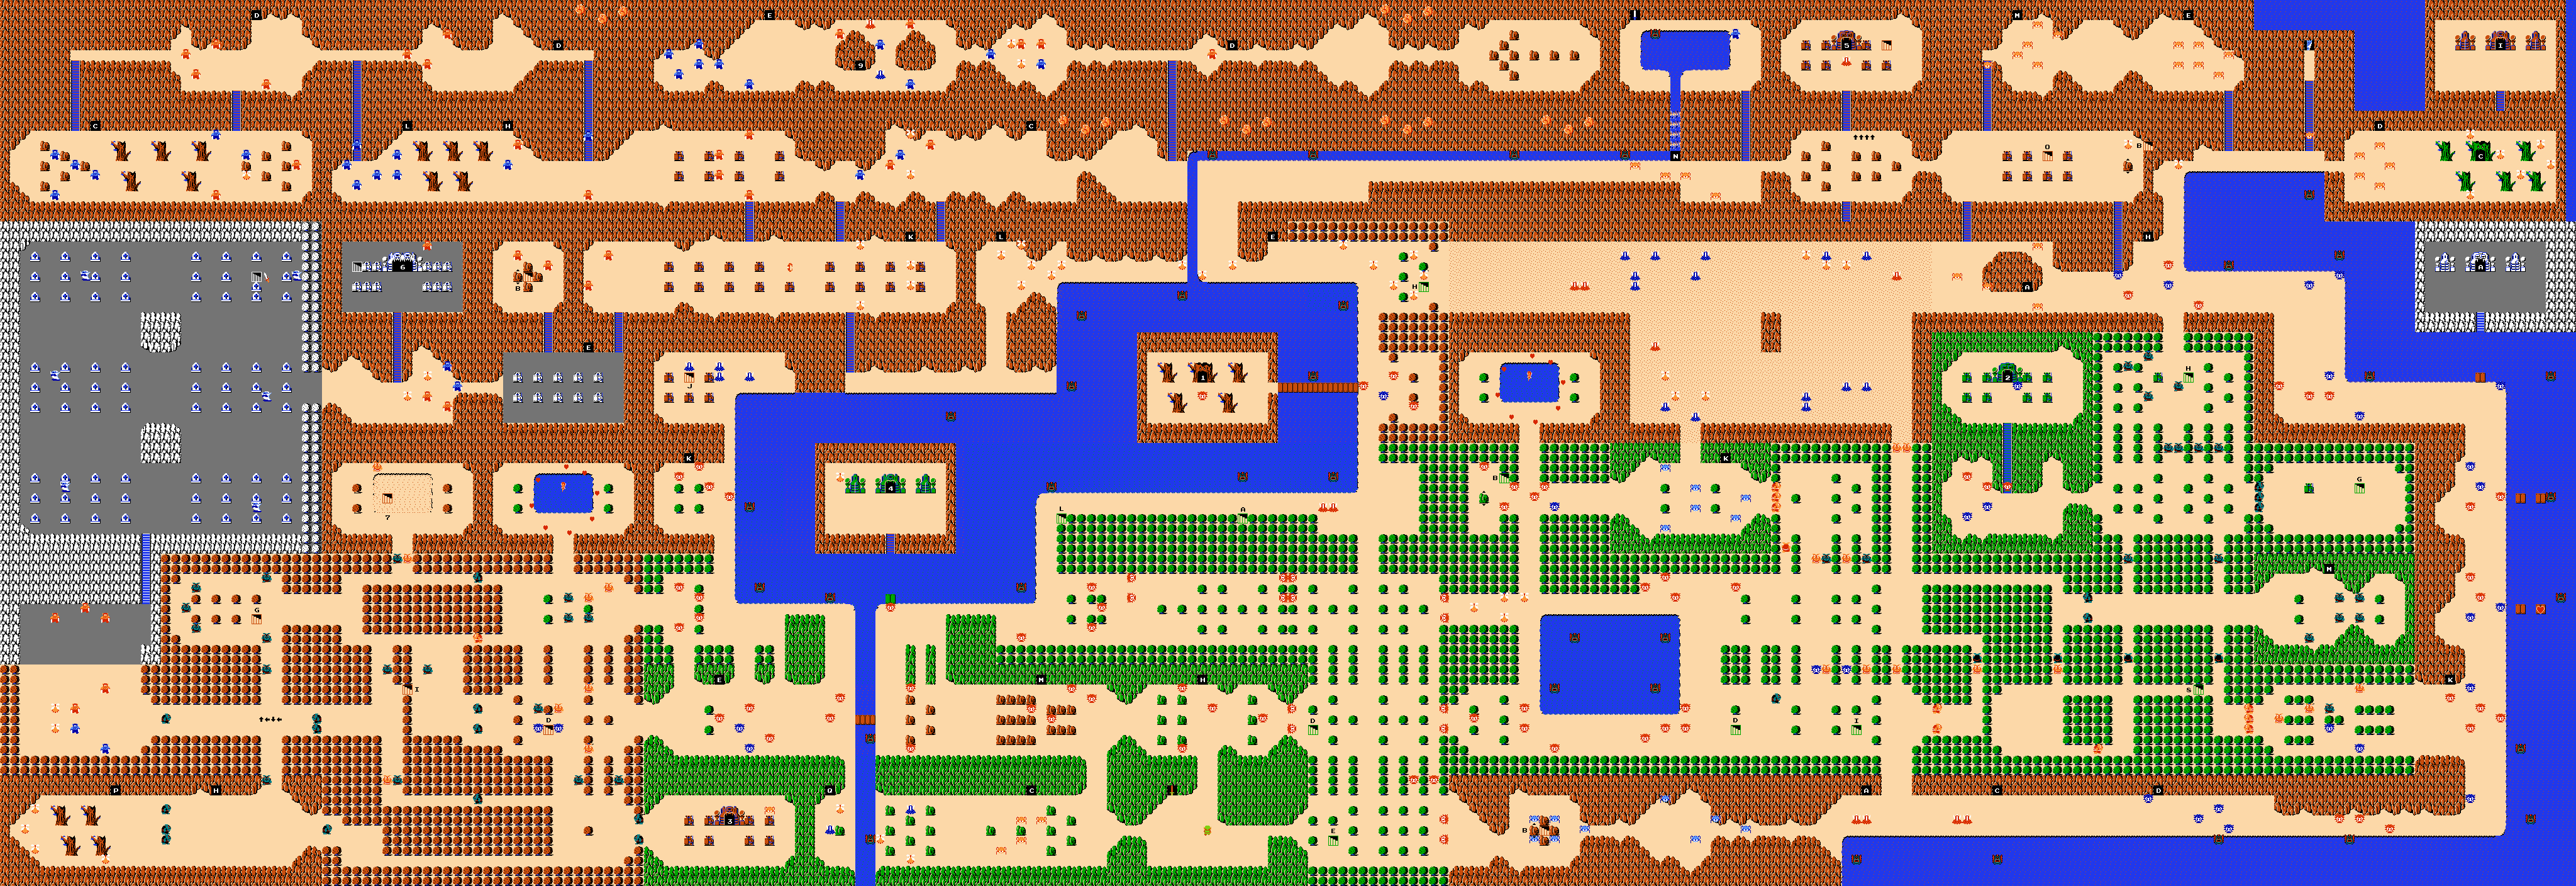 Legend of Zelda Maps - Ian-Albert com